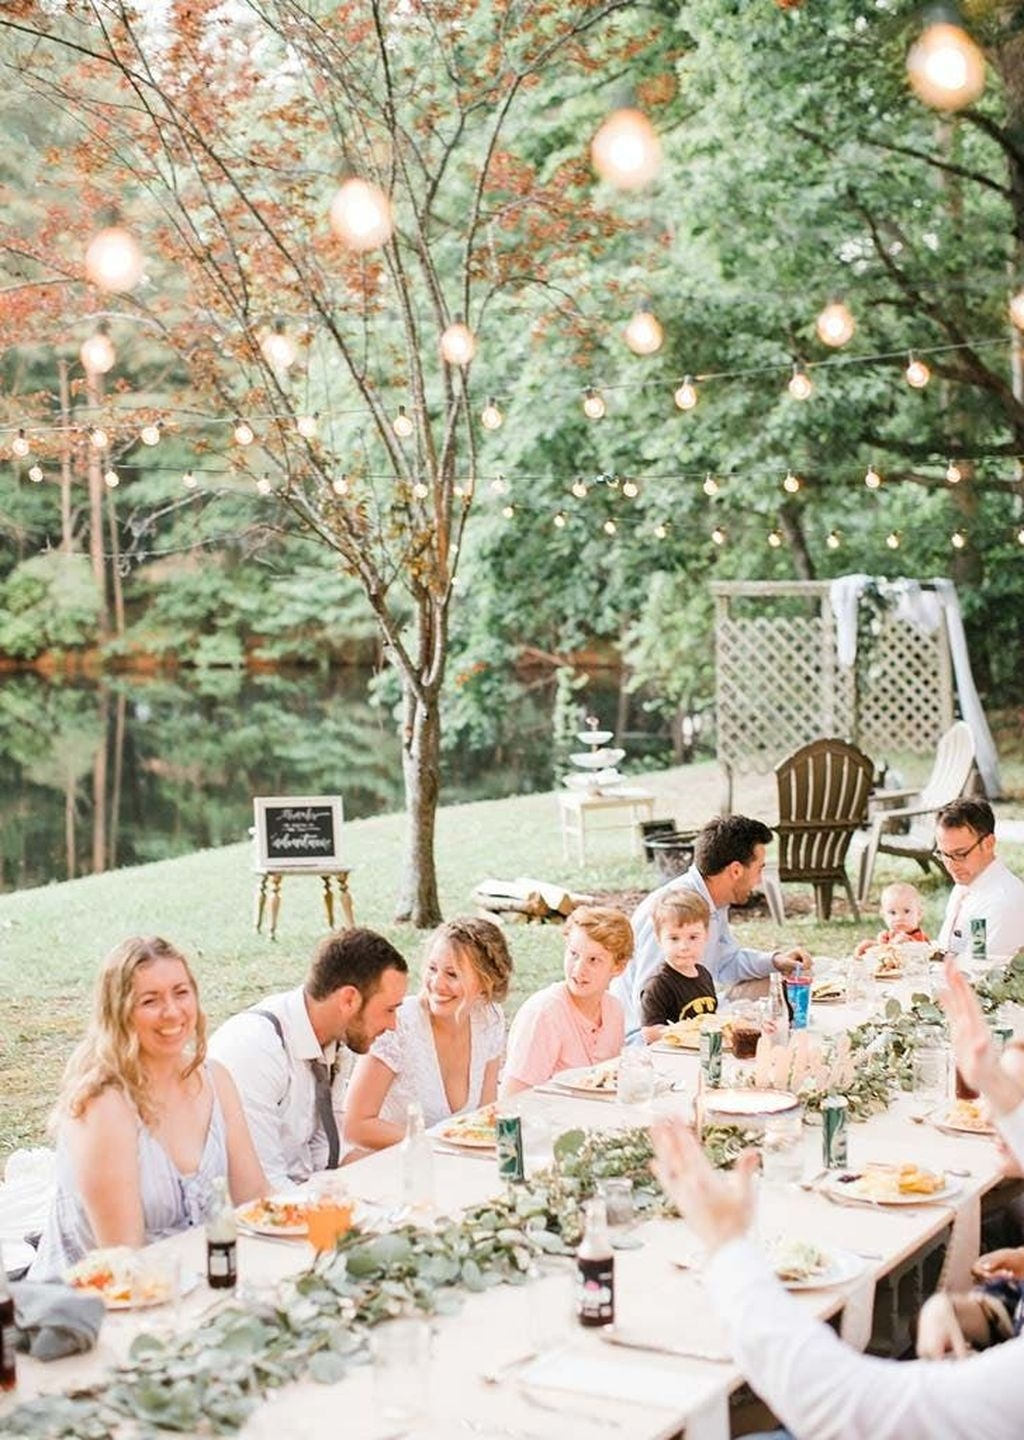 Beautiful Backyard Wedding Decor Ideas To Get A Romantic Impression 07